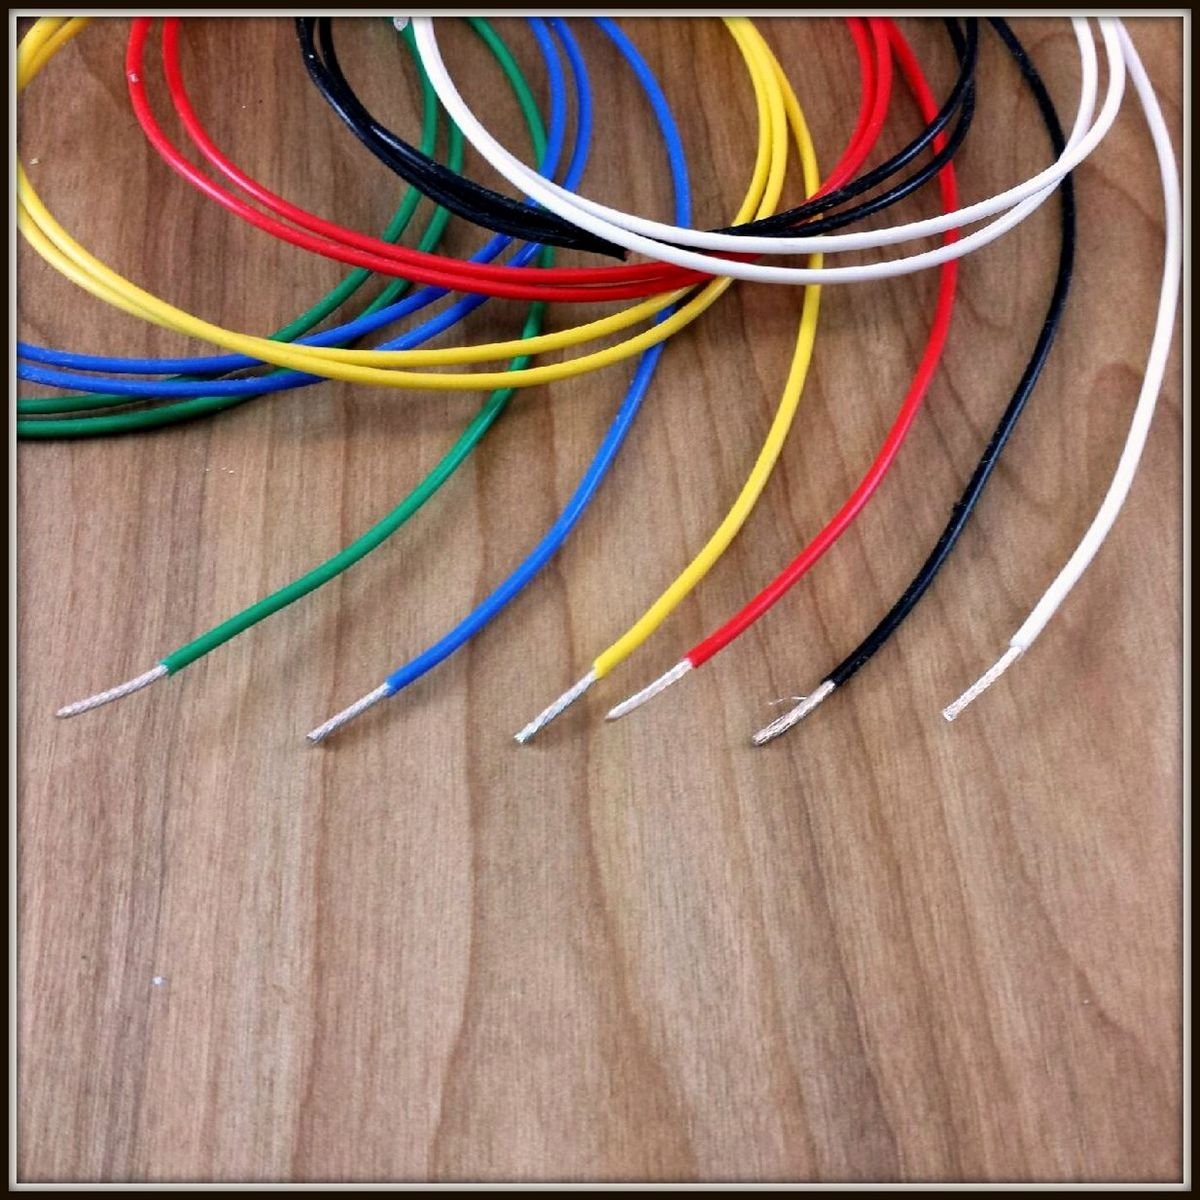 PTFE wire specializes in providing a quality collection of PTFE ...